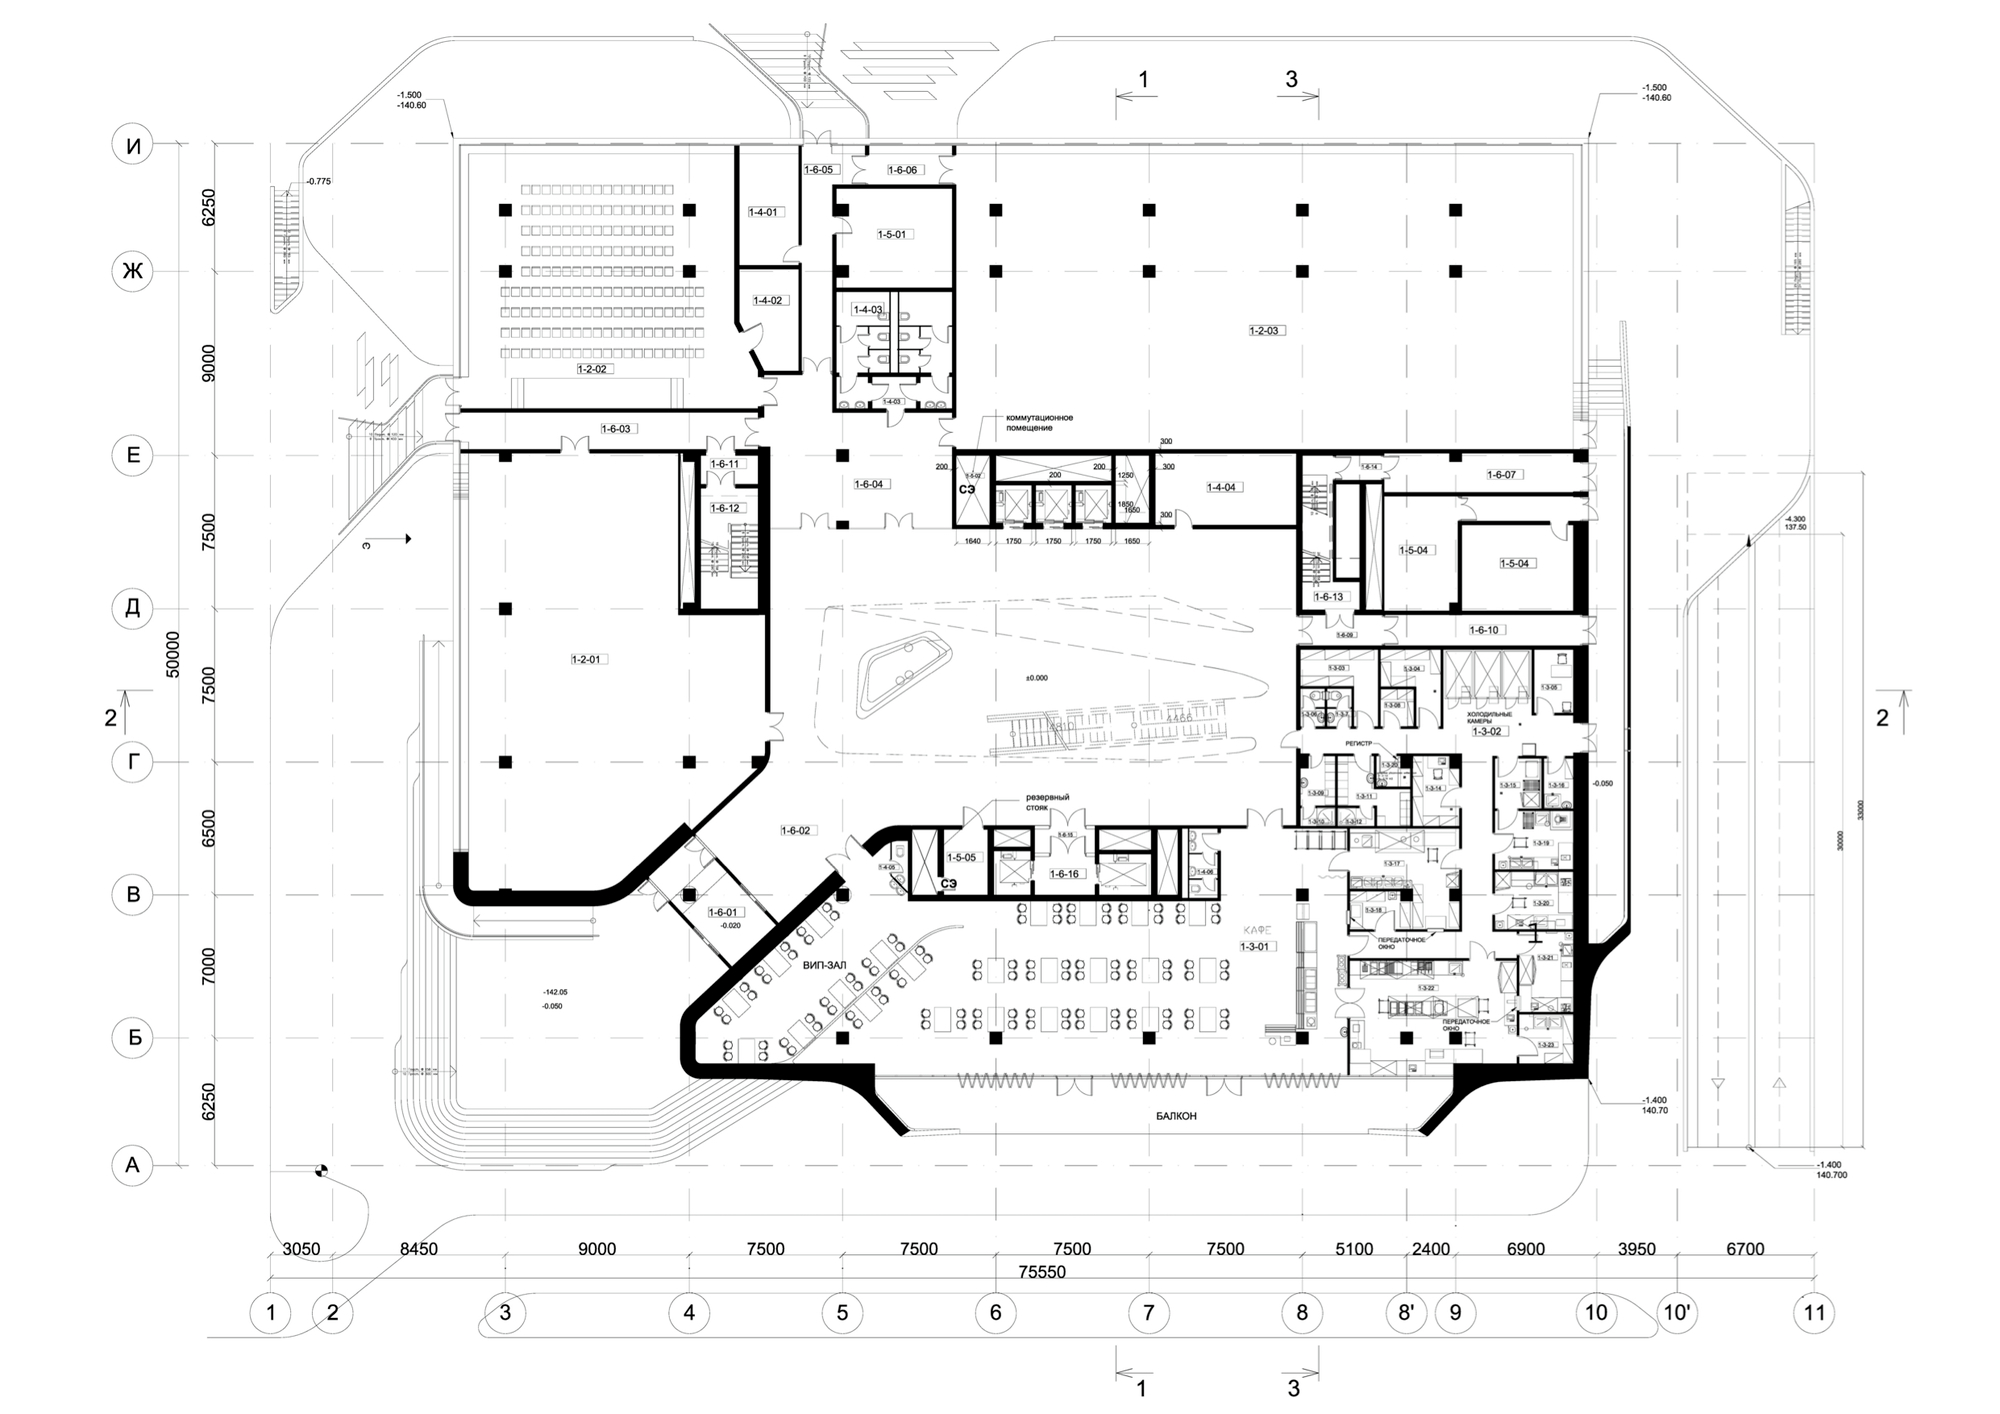 Gallery of dominion office building zaha hadid Office building floor plan layout